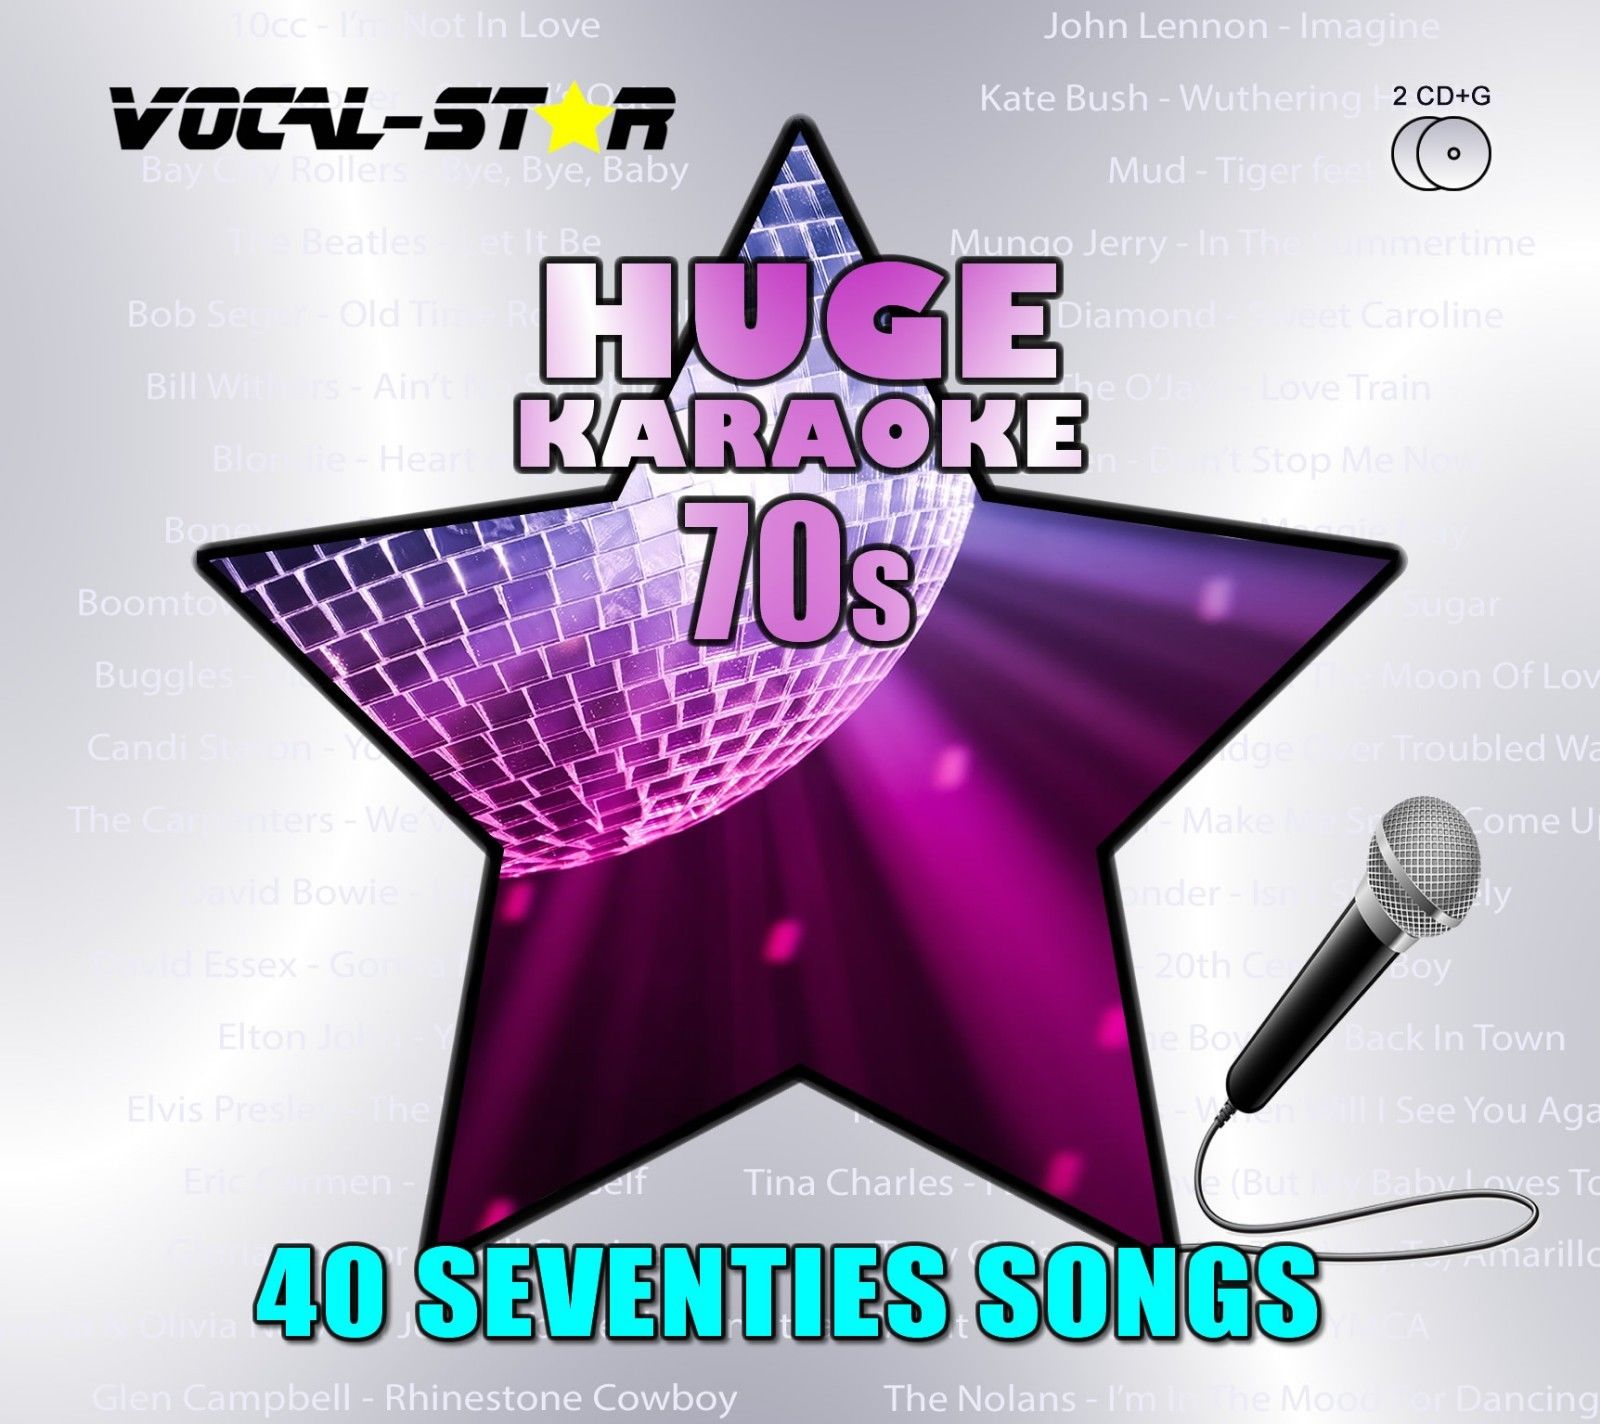 Vocal-Star Huge Karaoke Hits of 70s - 40 Songs - 2 CDG Disc Set